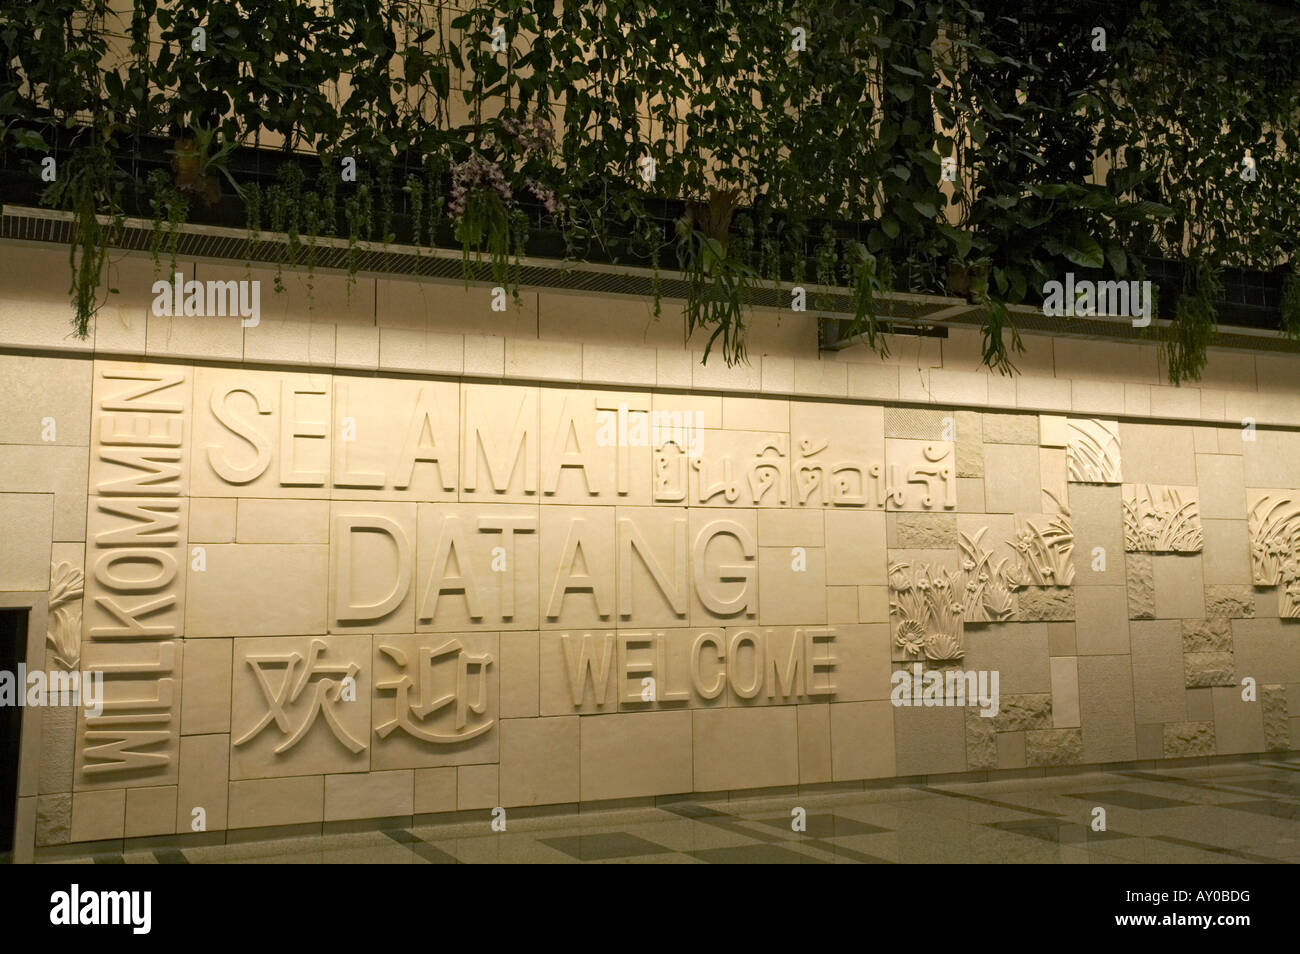 Sculptured sandstone art wall display, behind the Green Wall in the ...